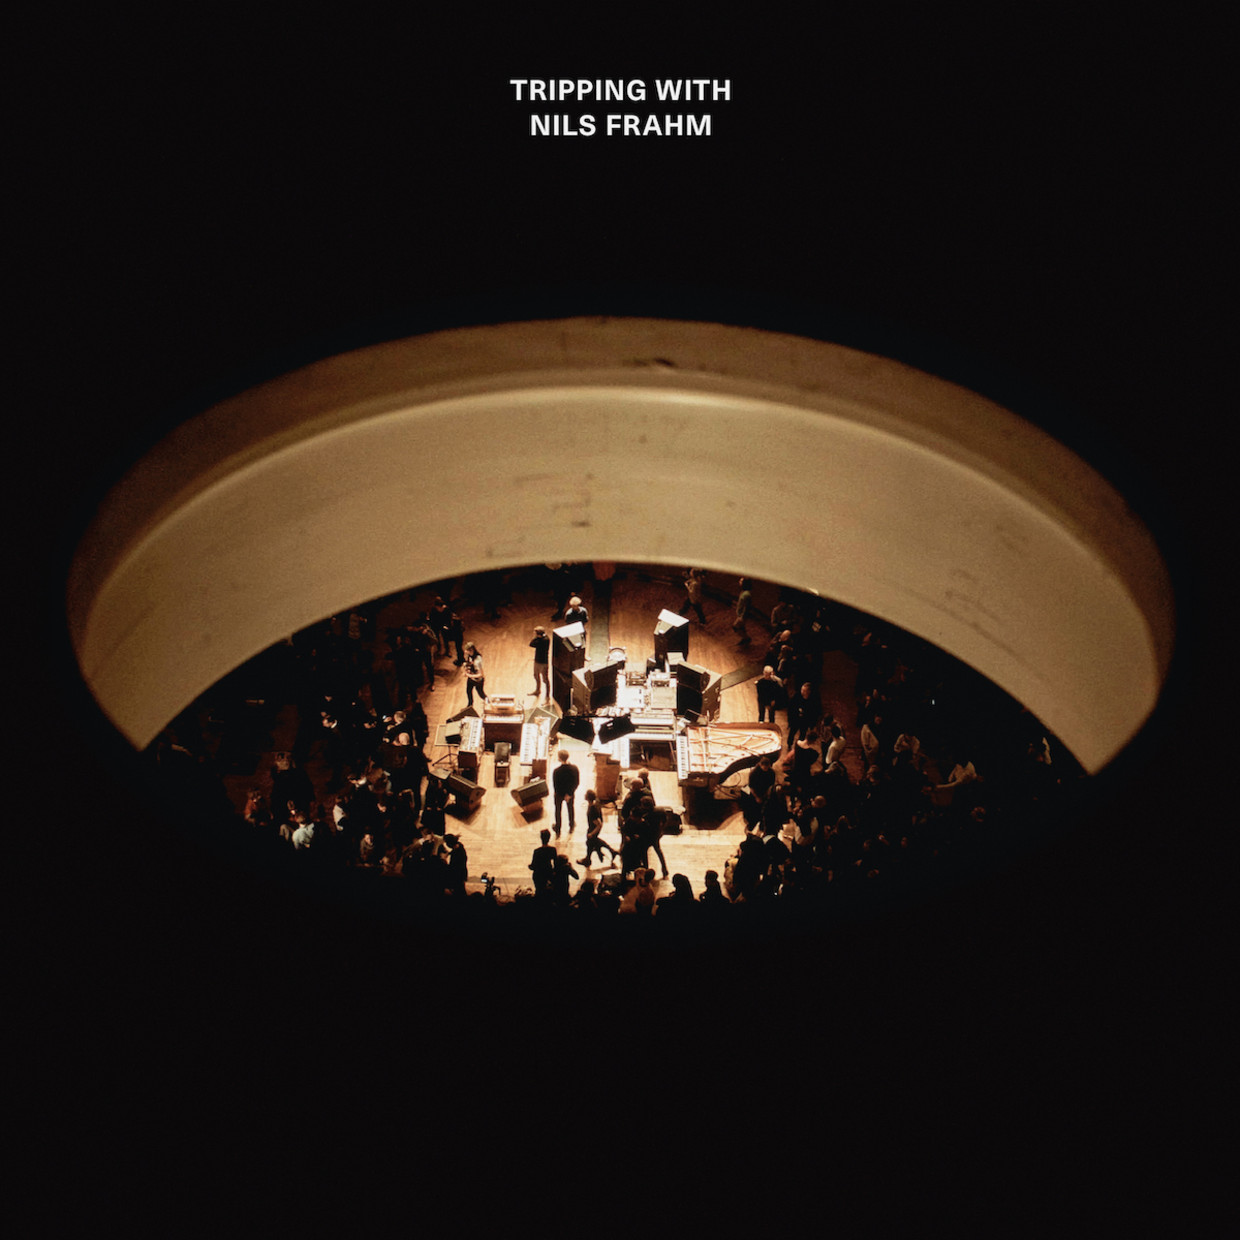 Tripping with Nils Frahm Beeld Humo